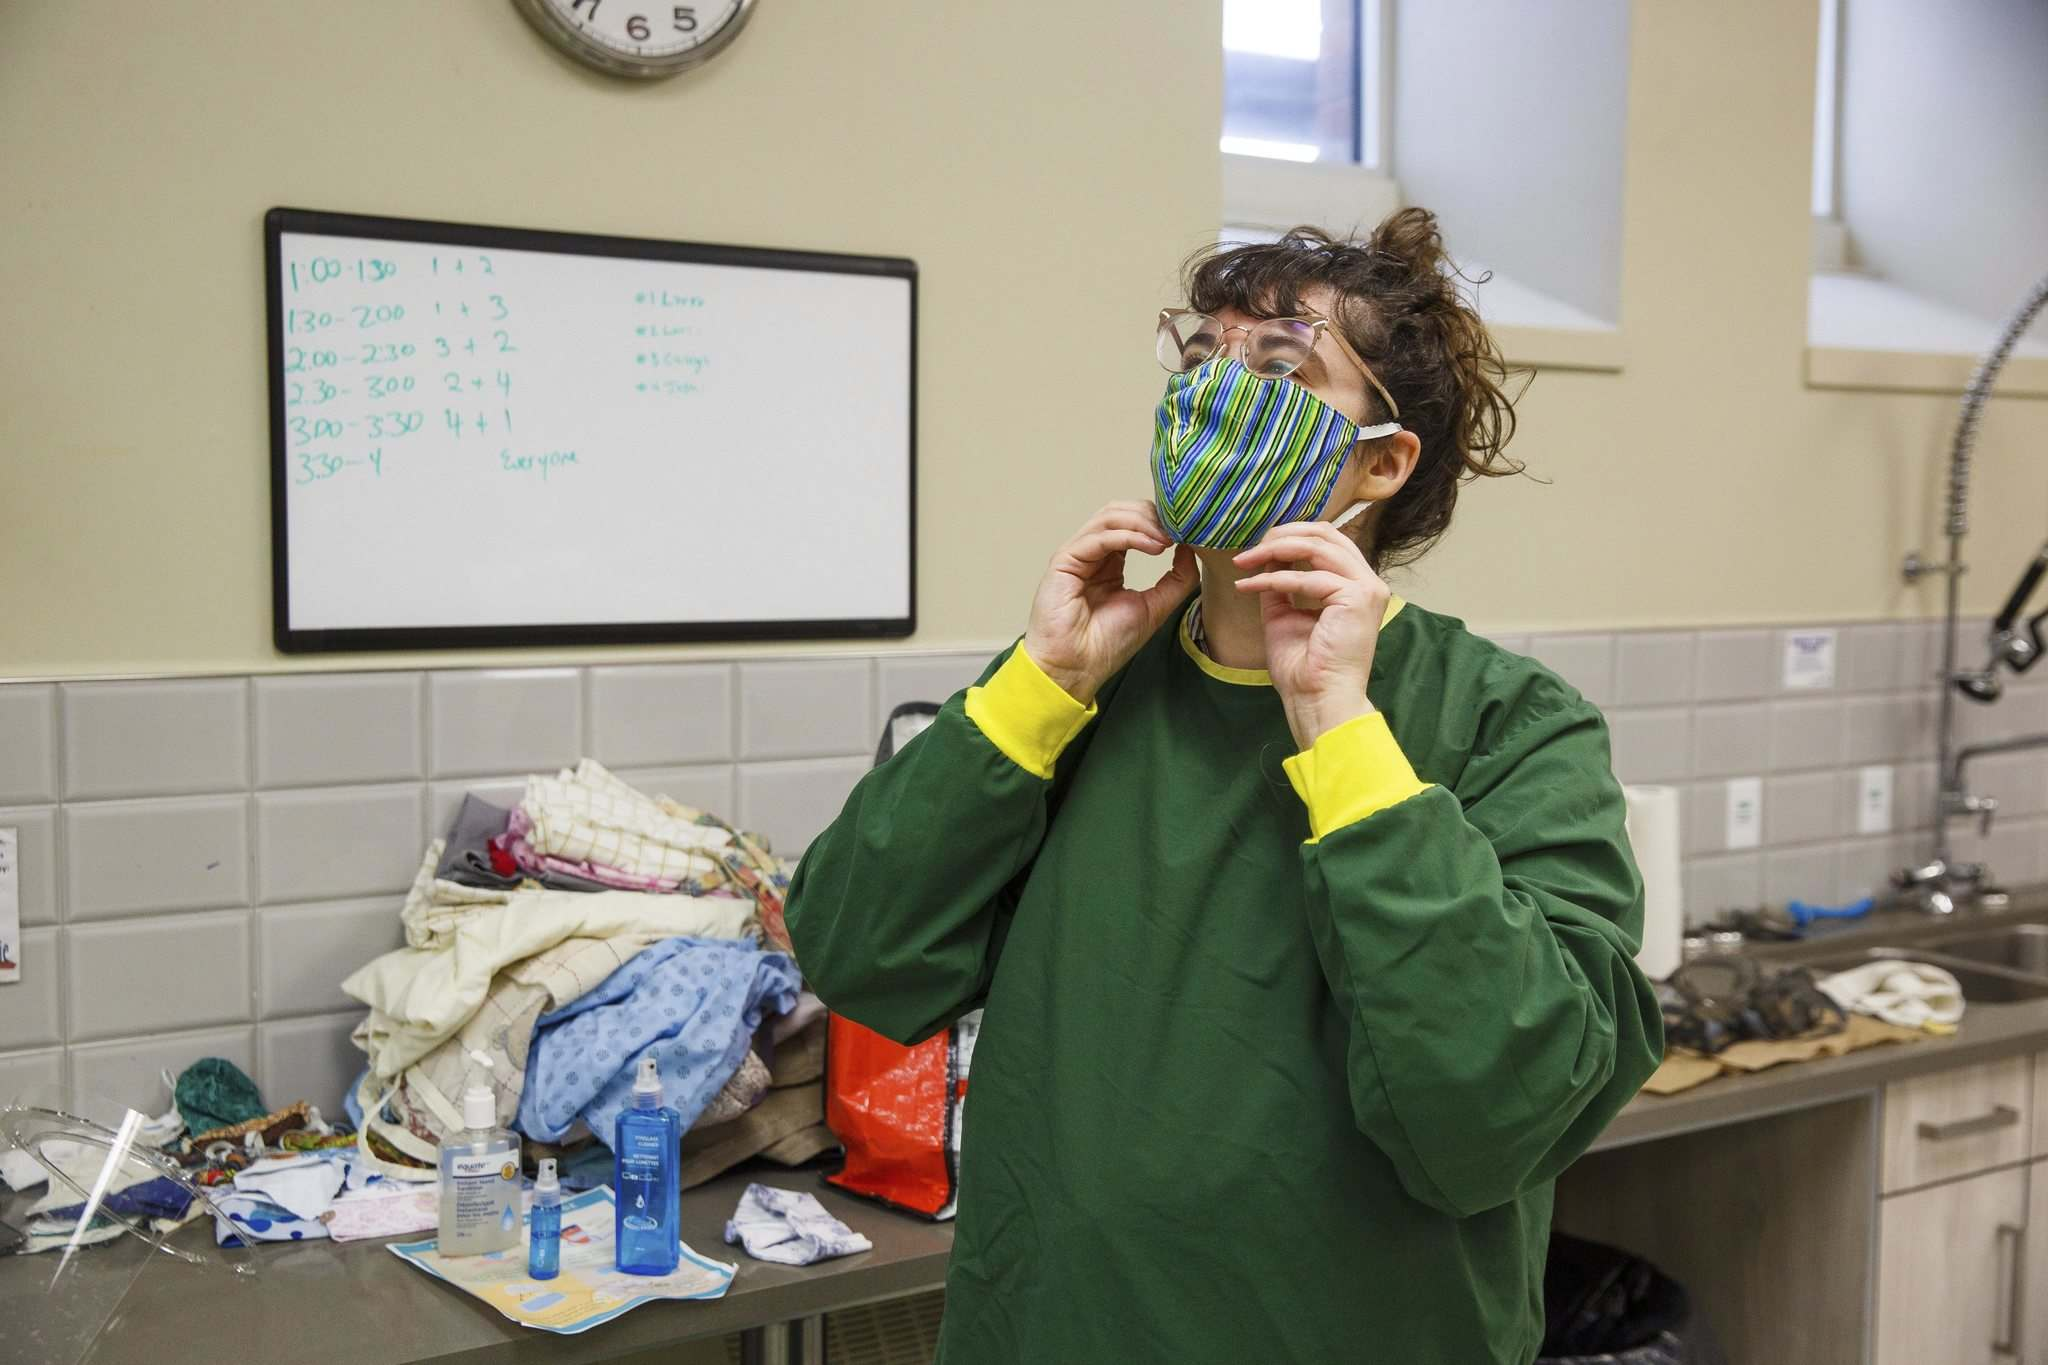 Morrison decks herself out in personal protective equipment before a recent shift. (Mike Deal / Winnipeg Free Press)</p>